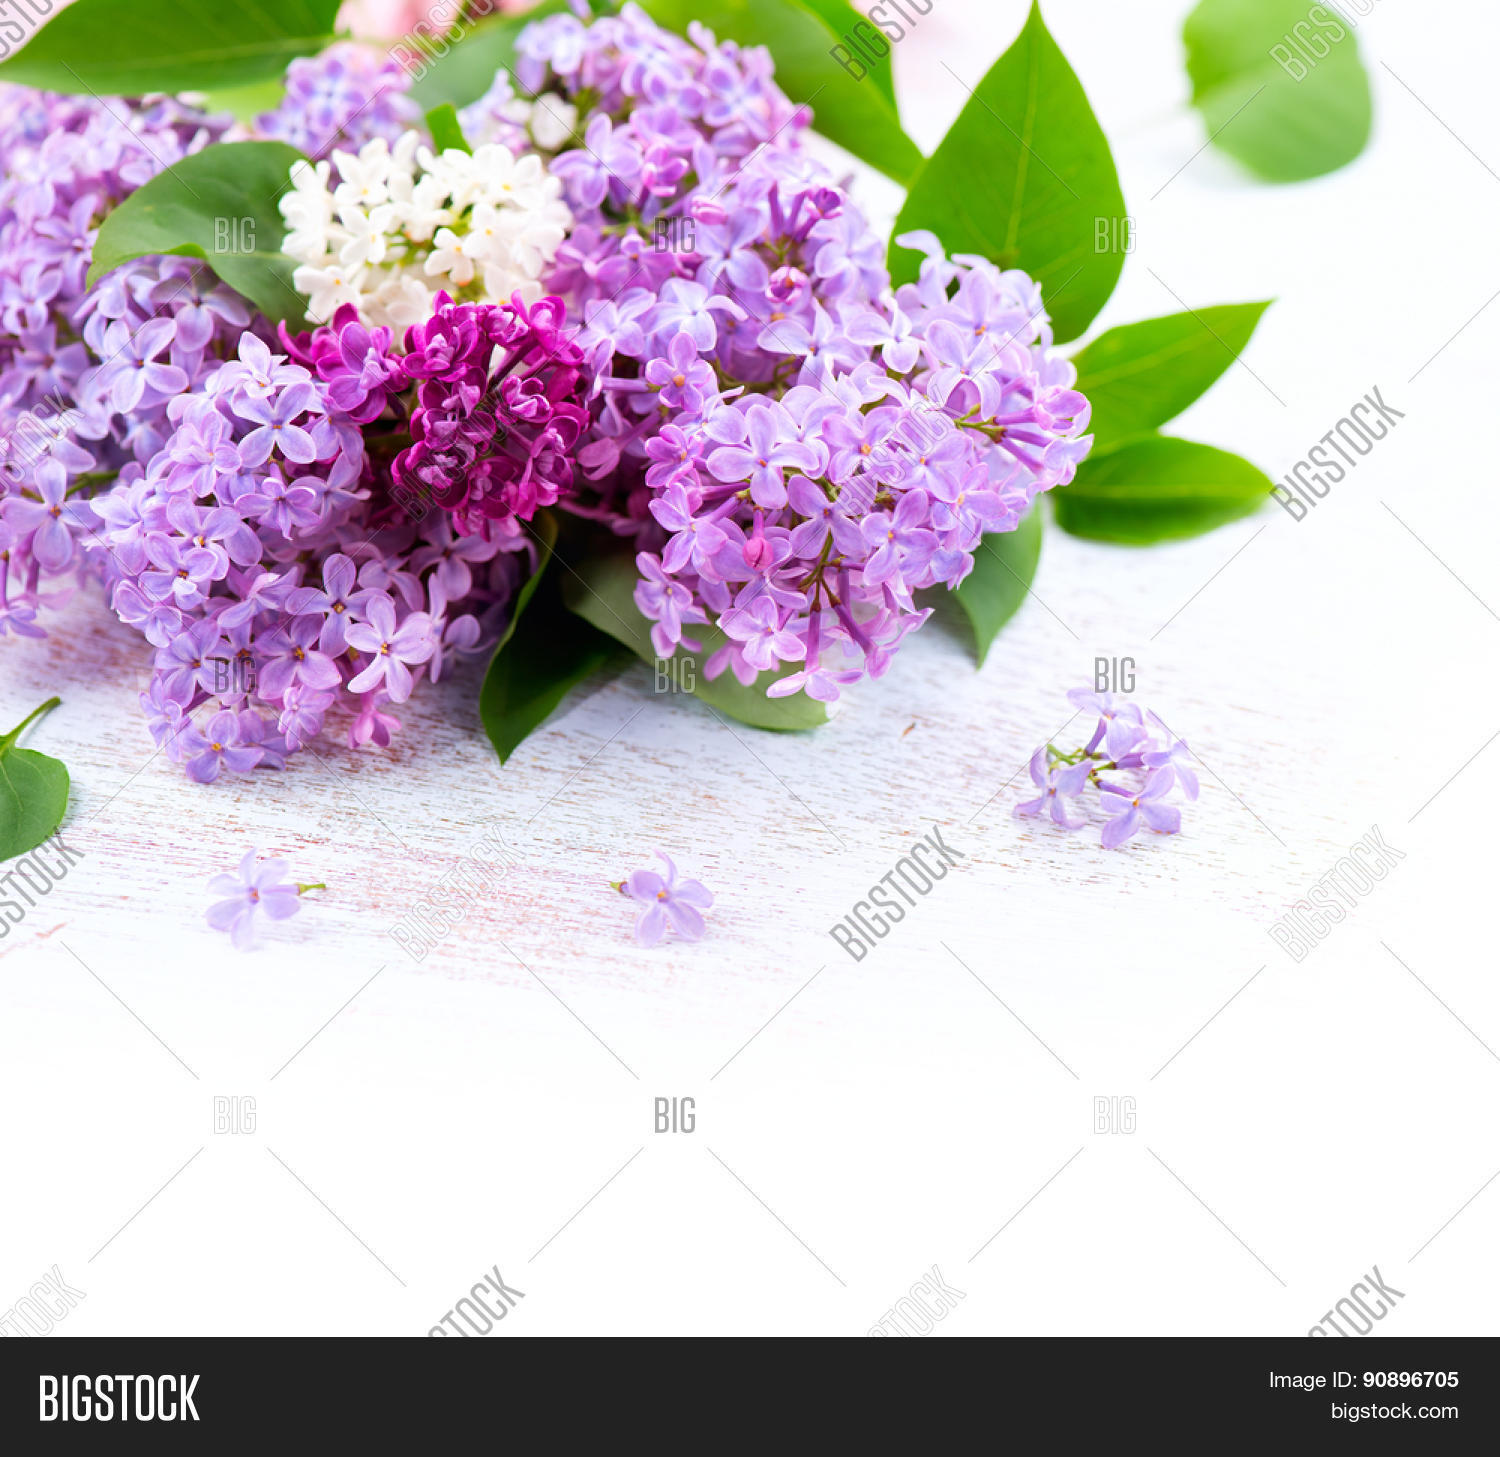 Lilac Flowers Bunch Image Photo Free Trial Bigstock